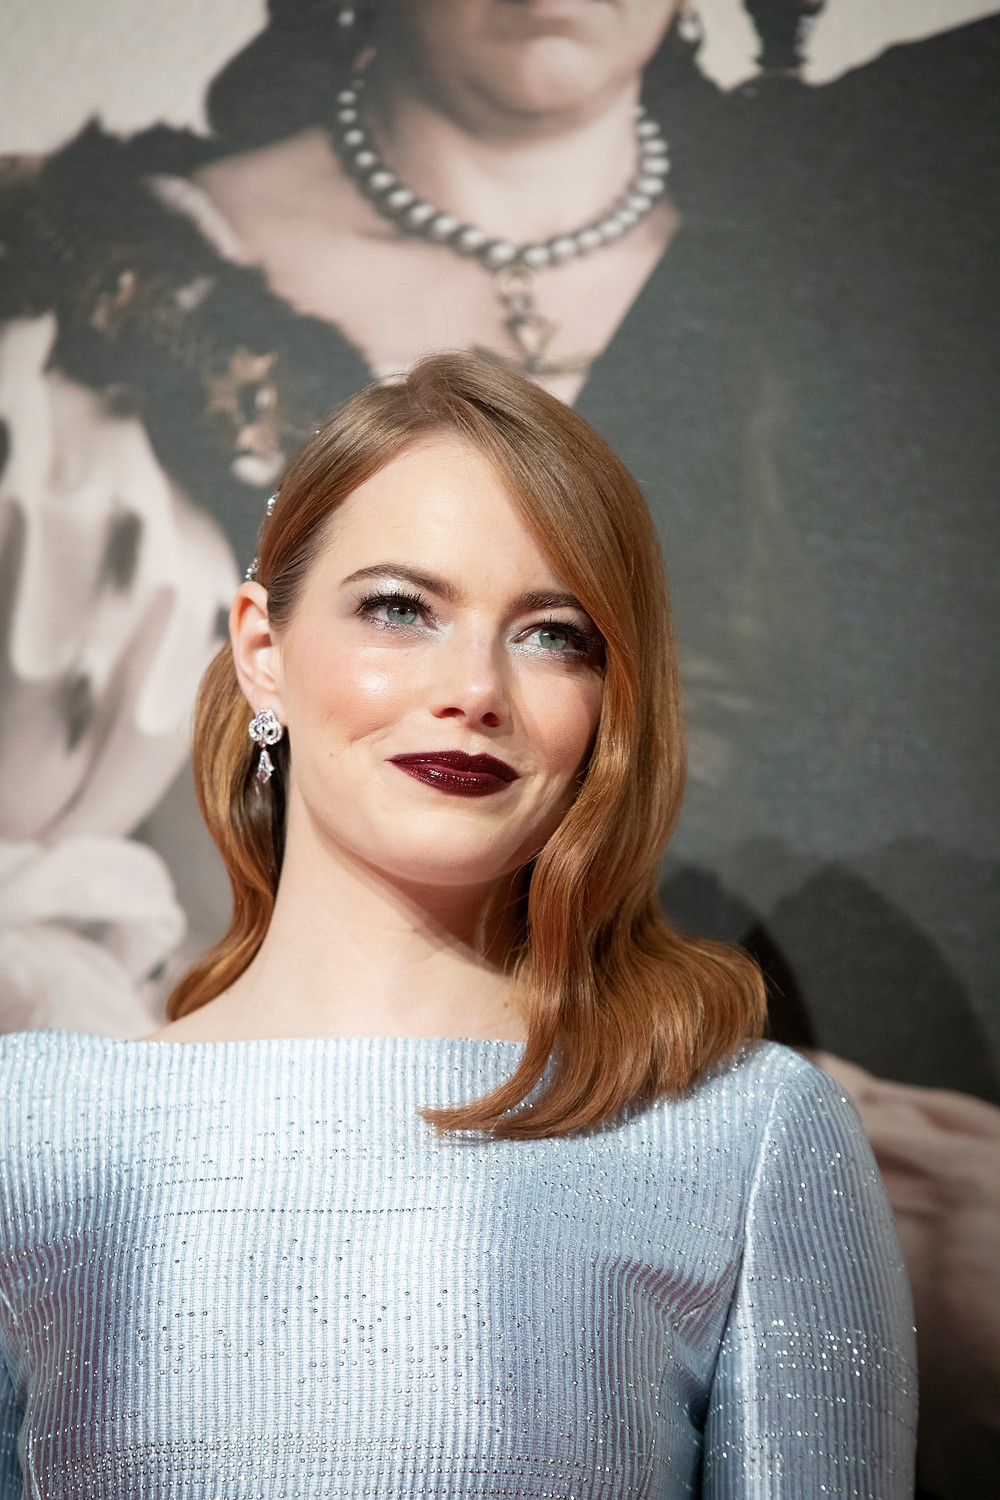 The Favourite co-star Emma Stone, who is nominated for a BAFTA as best supporting actress